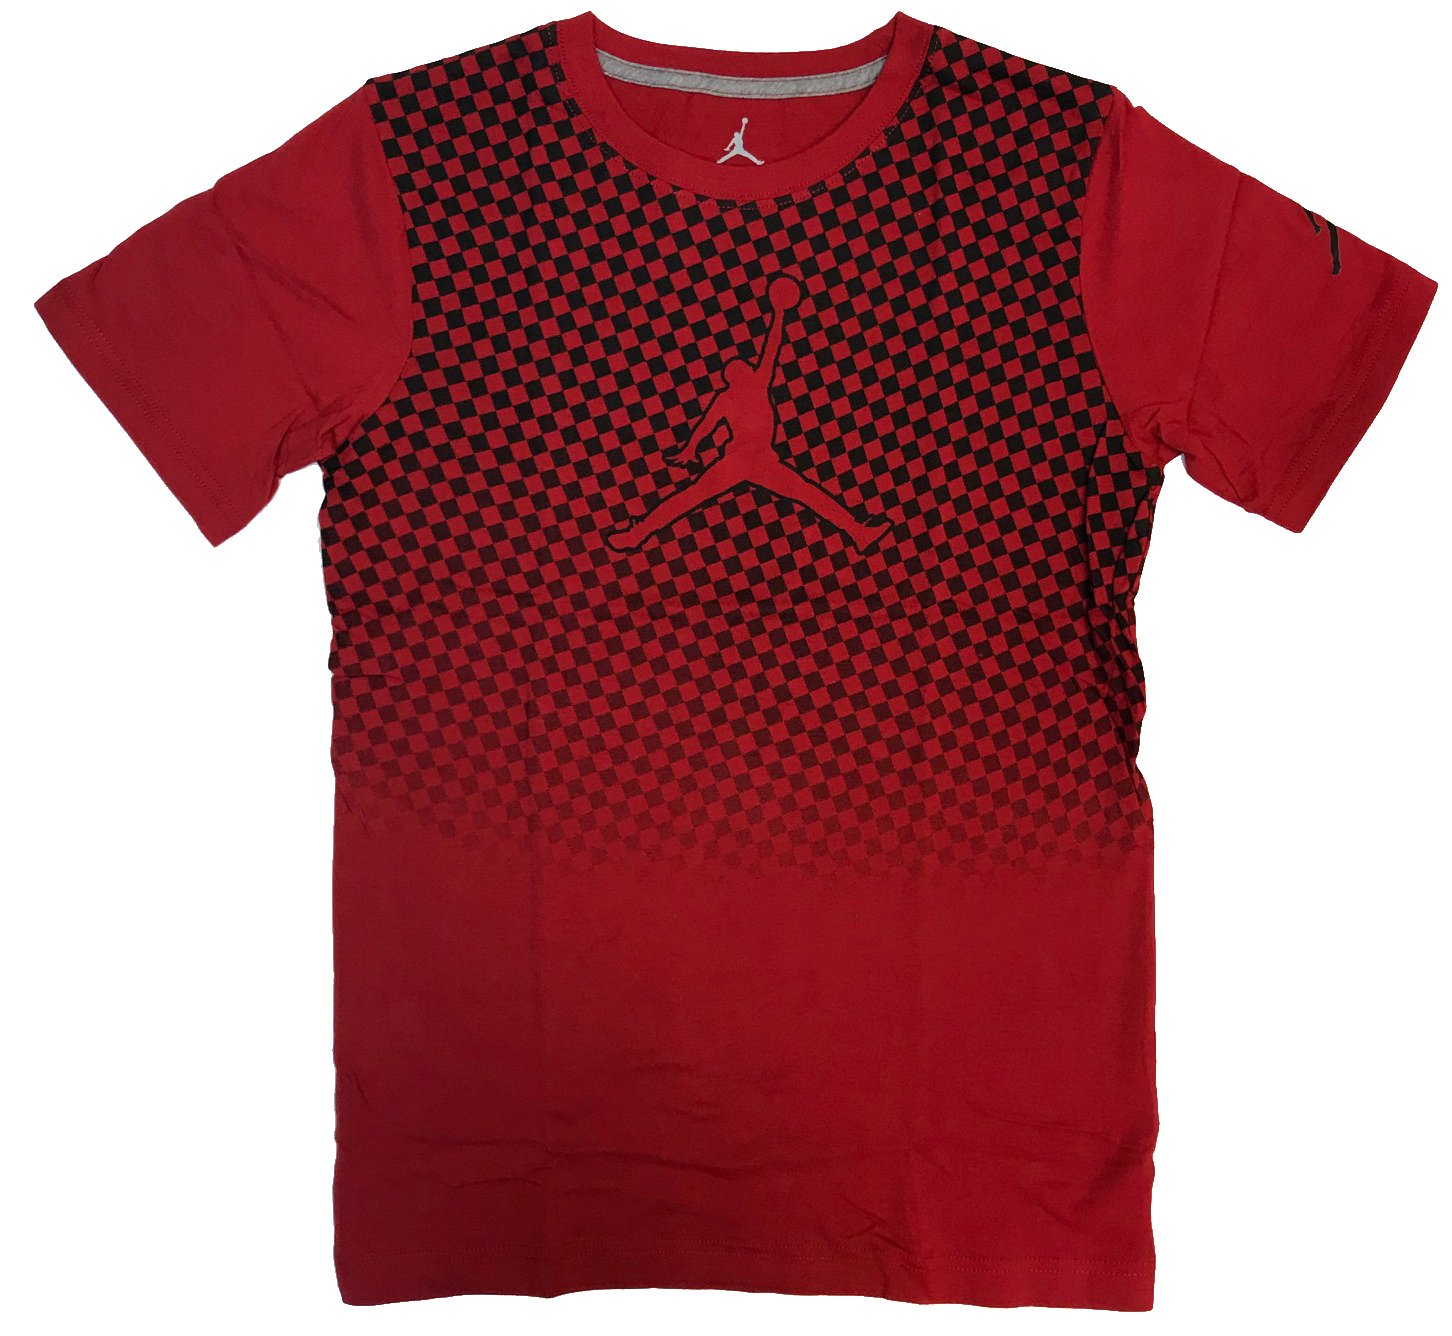 low priced 11d84 95ed7 Galleon - Nike Air Jordan Big Boys Jumpman Cotton Short Sleeve Tee Shirt  (Gym Red, Large)